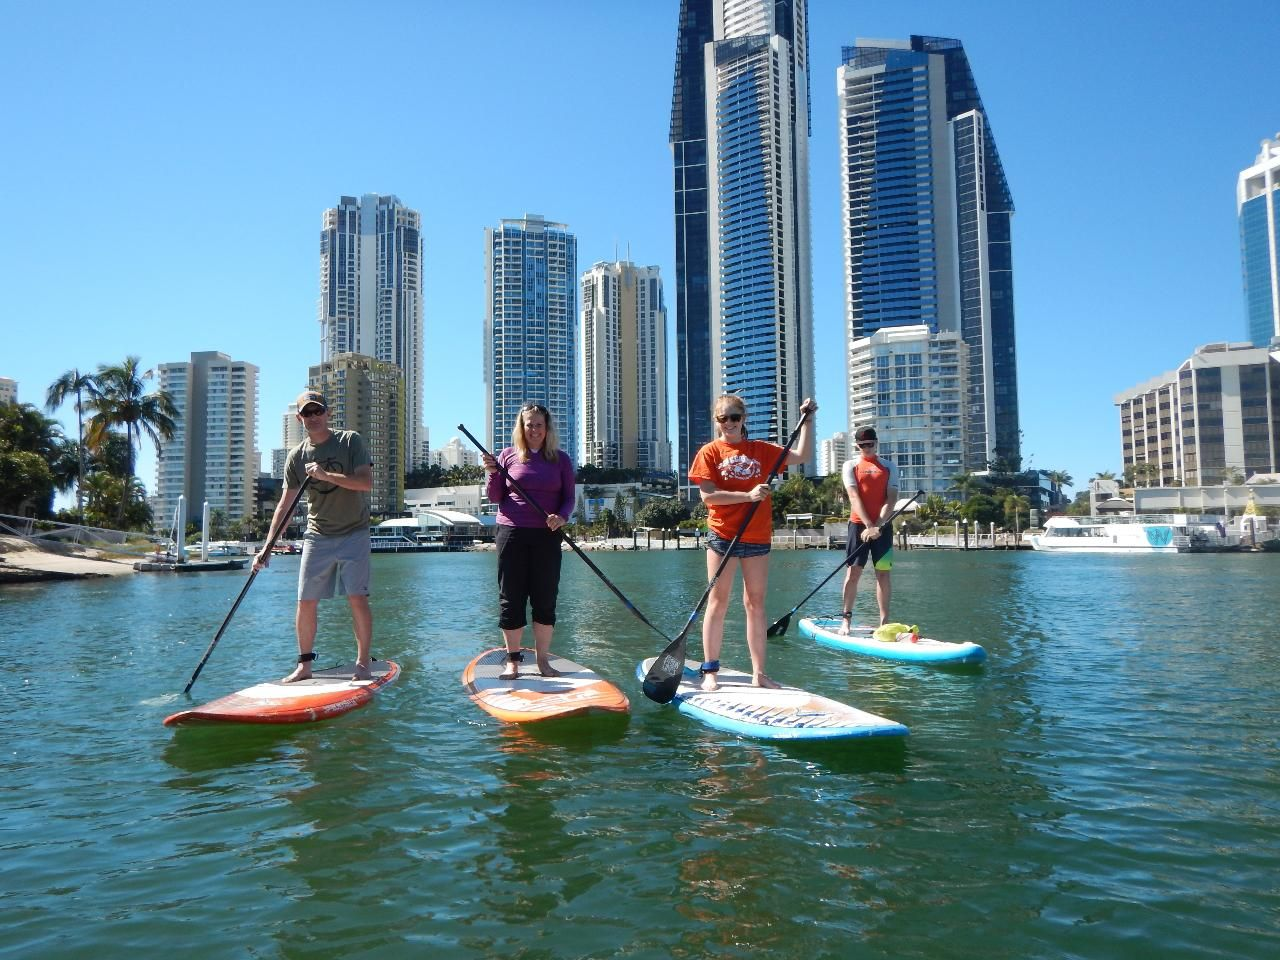 Full Day SUP Hire Surfers Paradise QLD, Australia